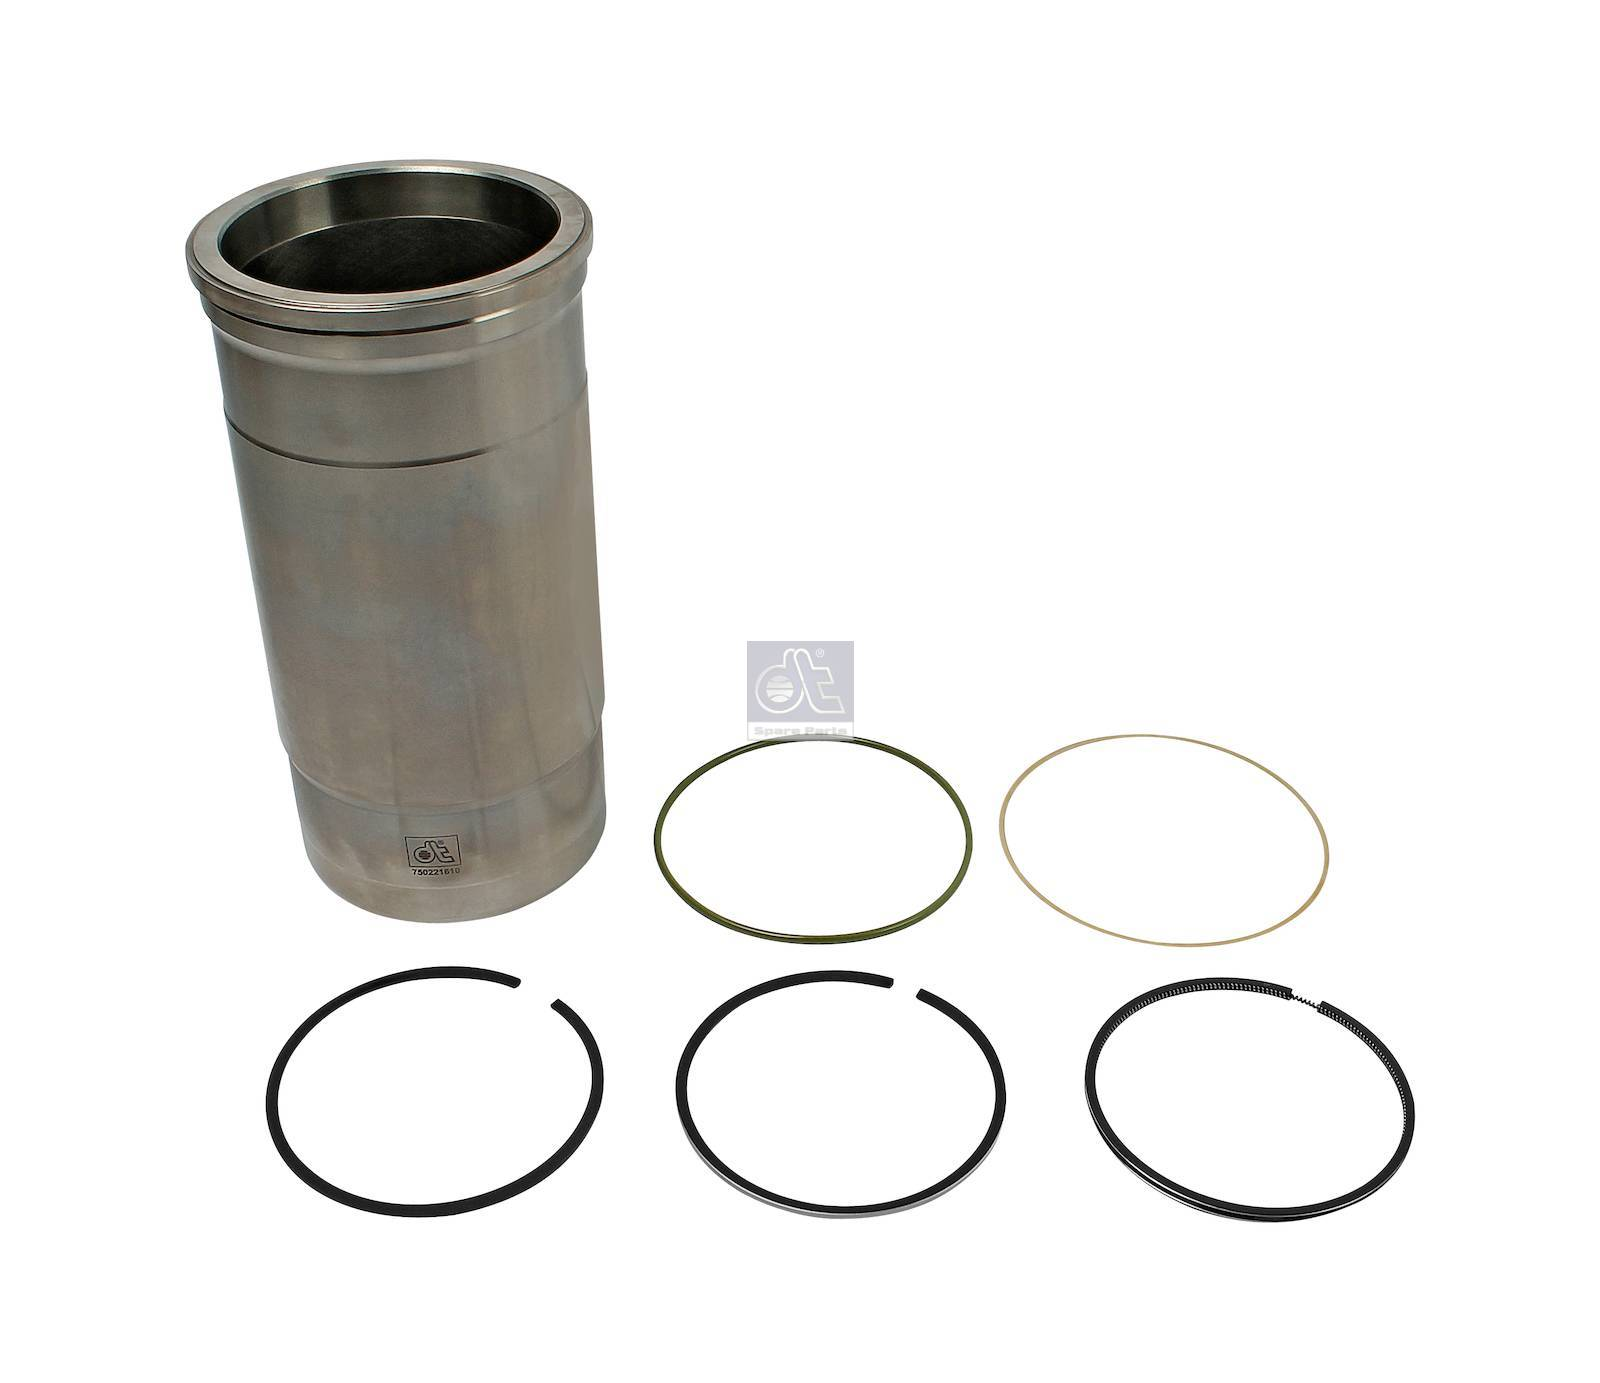 Cylinder liner, with piston rings